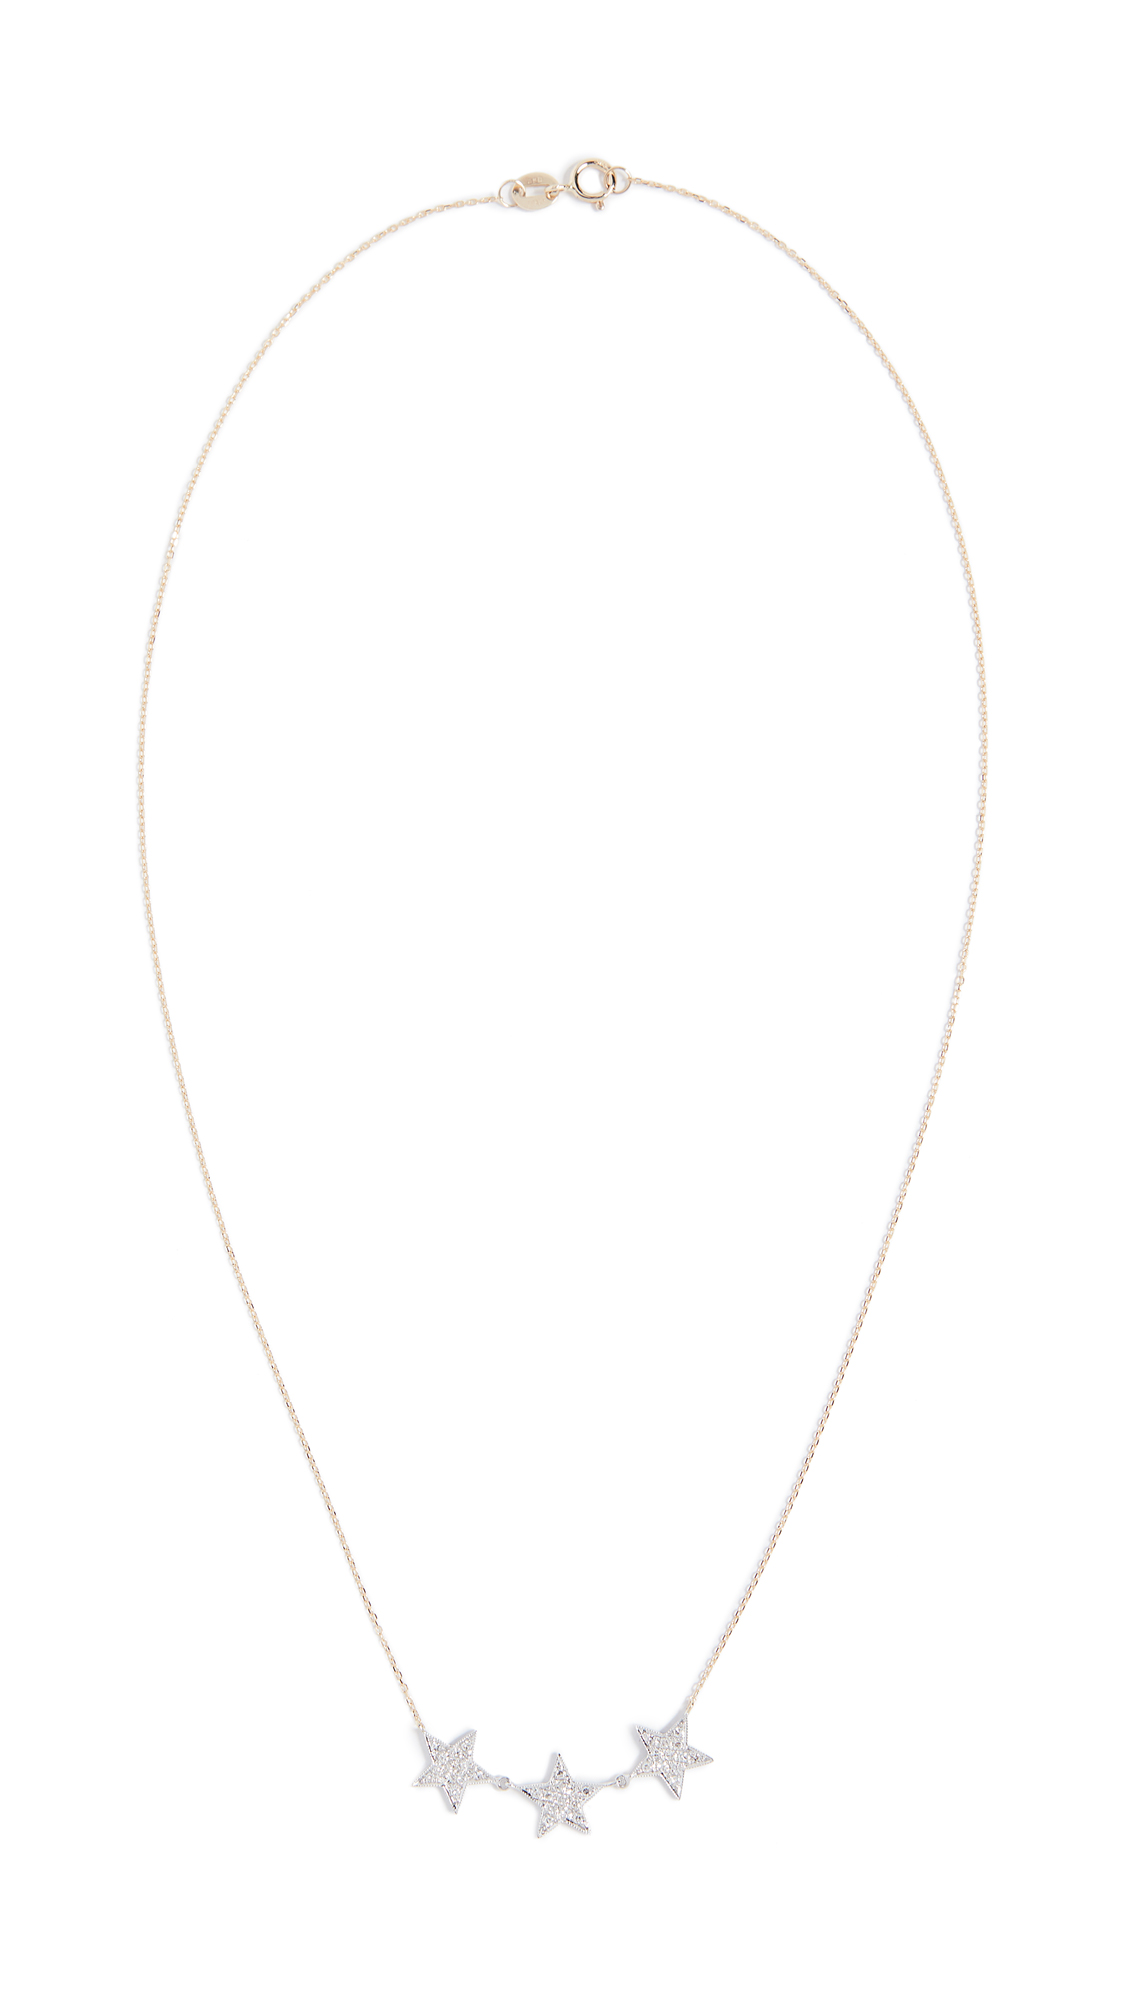 DANA REBECCA 14K GOLD 3 STAR NECKLACE